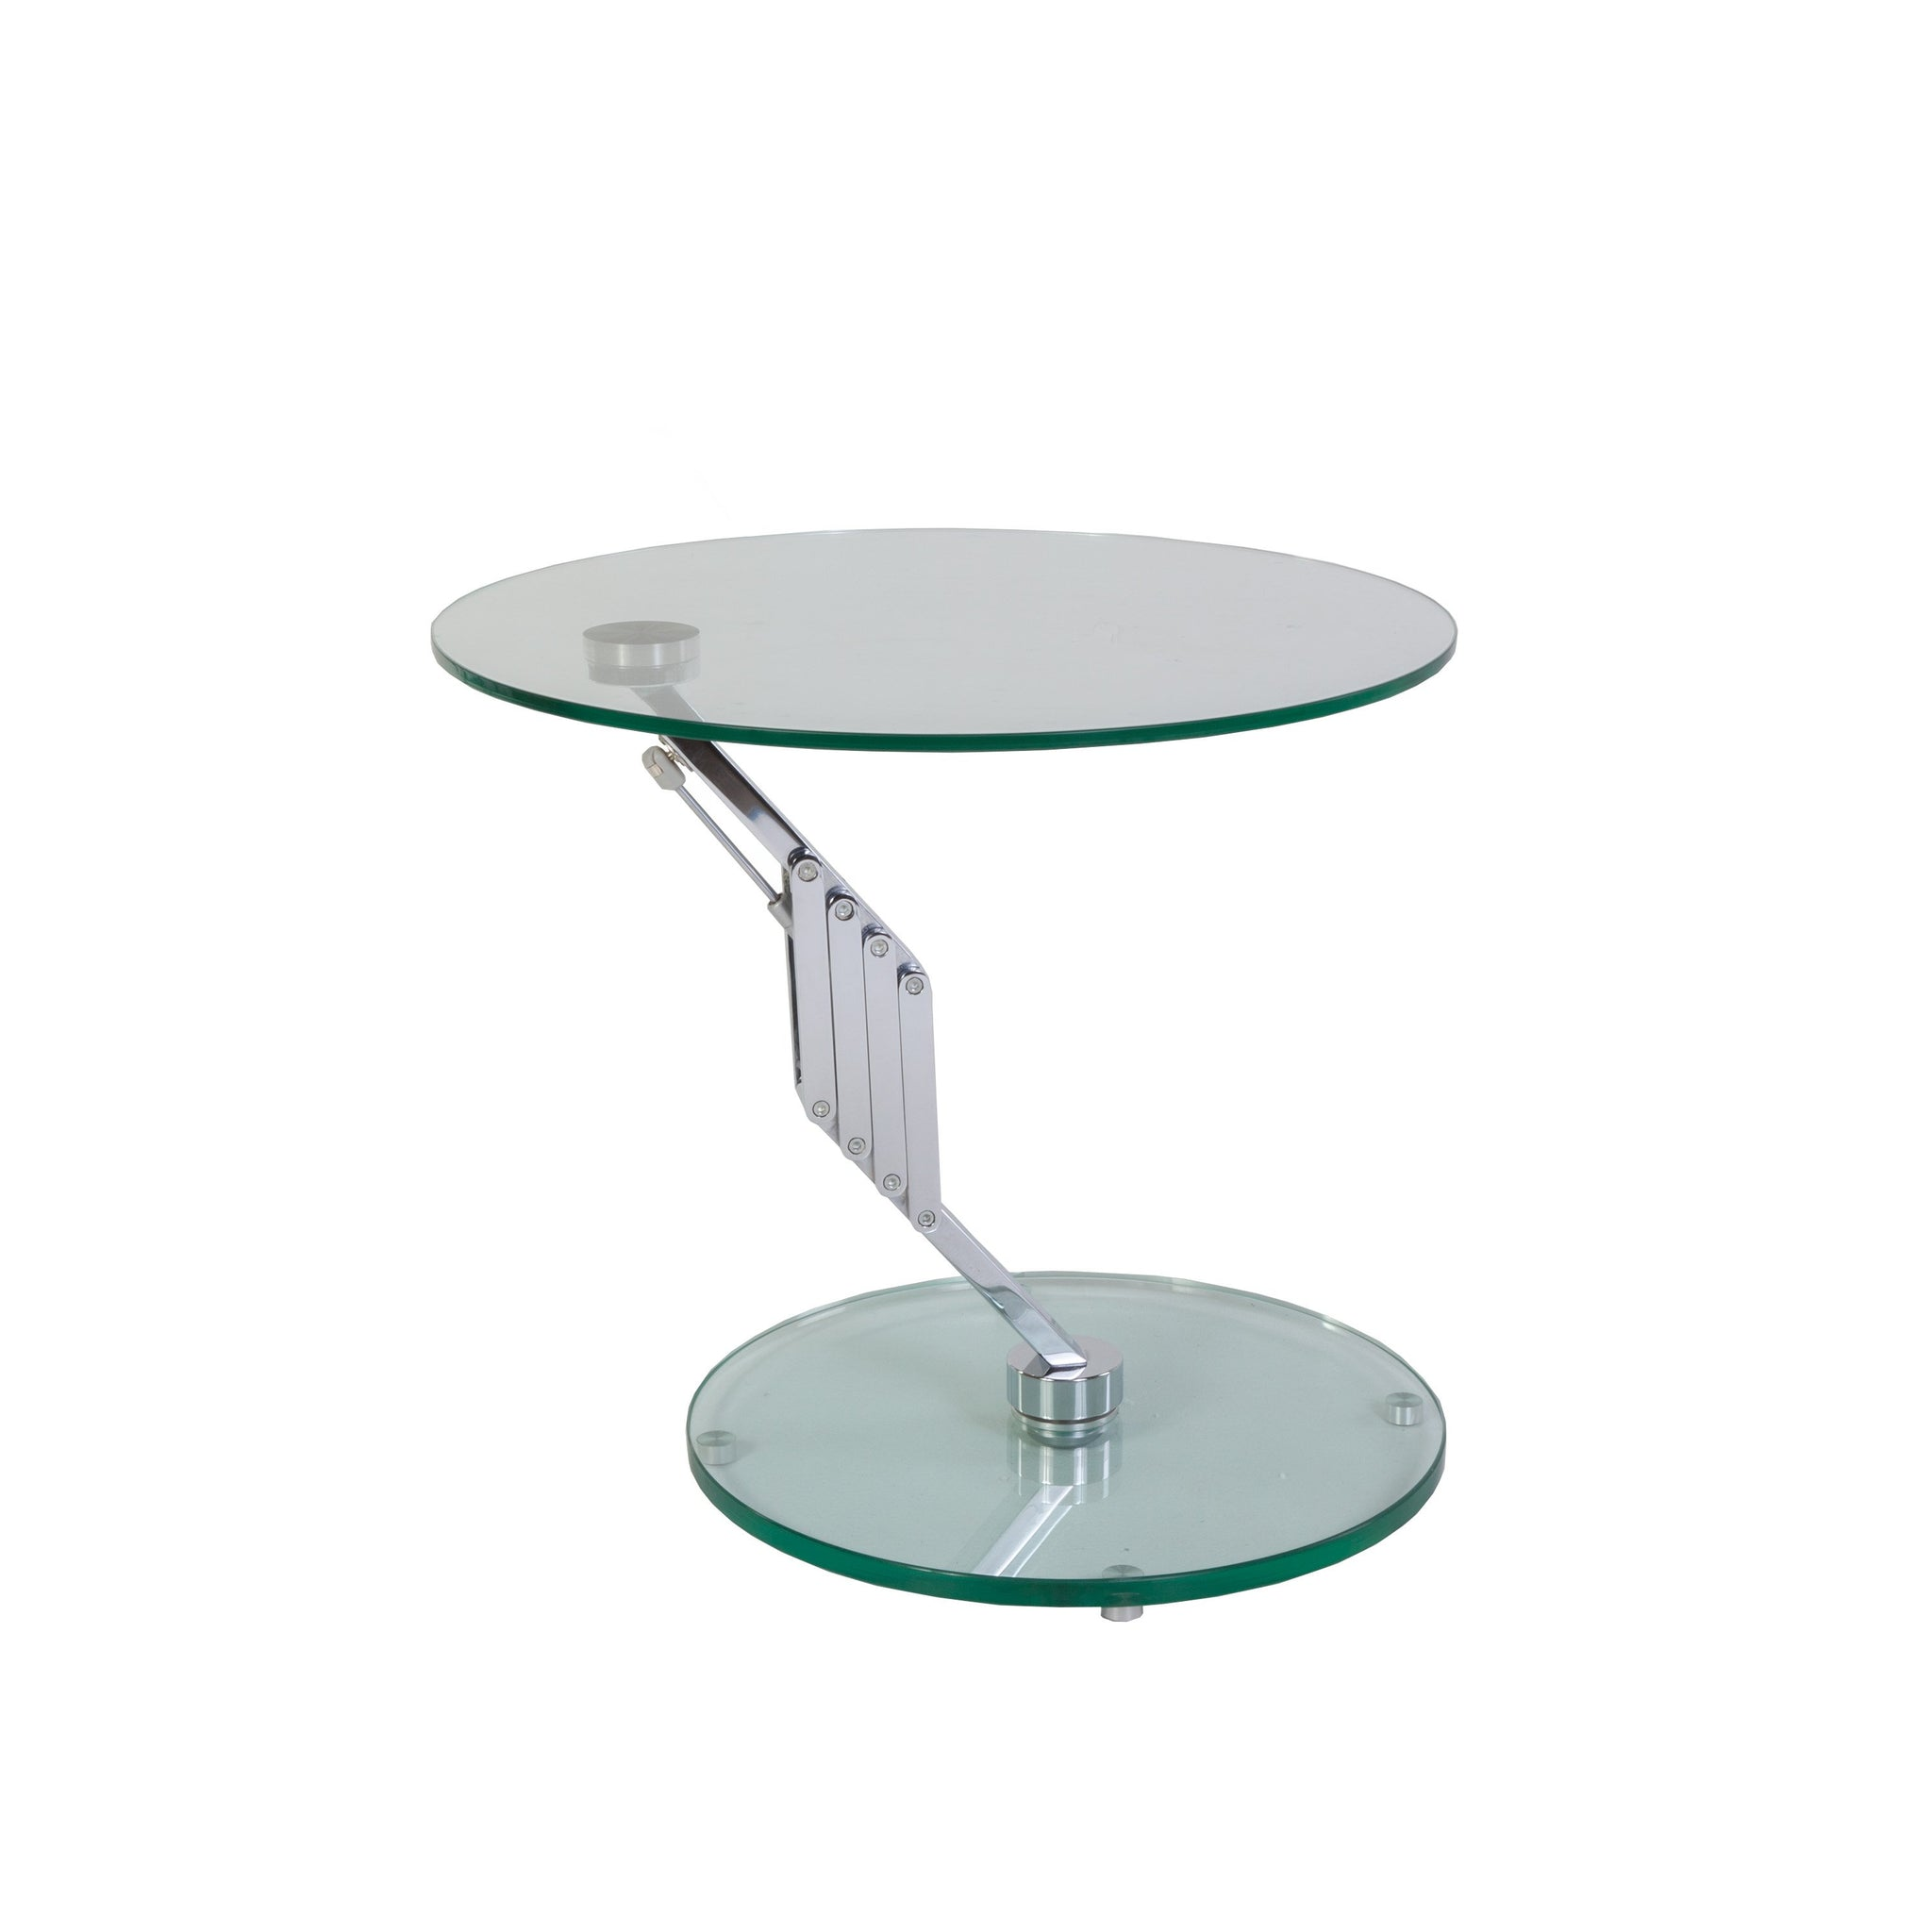 [FQT7207R] Agapito side table